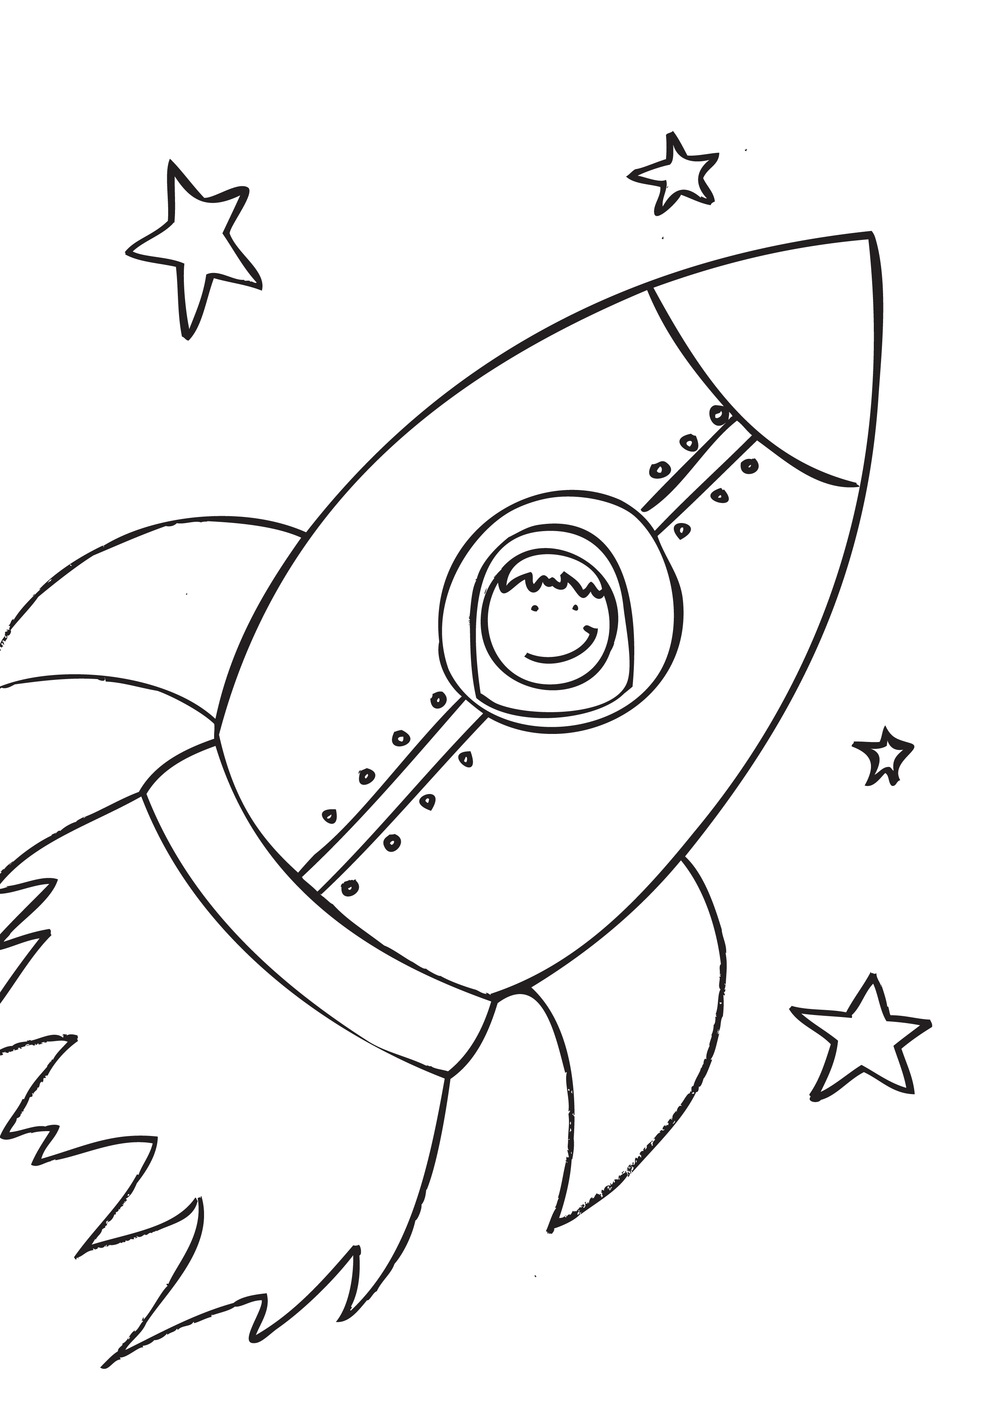 free printable rocket ship coloring pages - Rocket Ship Coloring Page